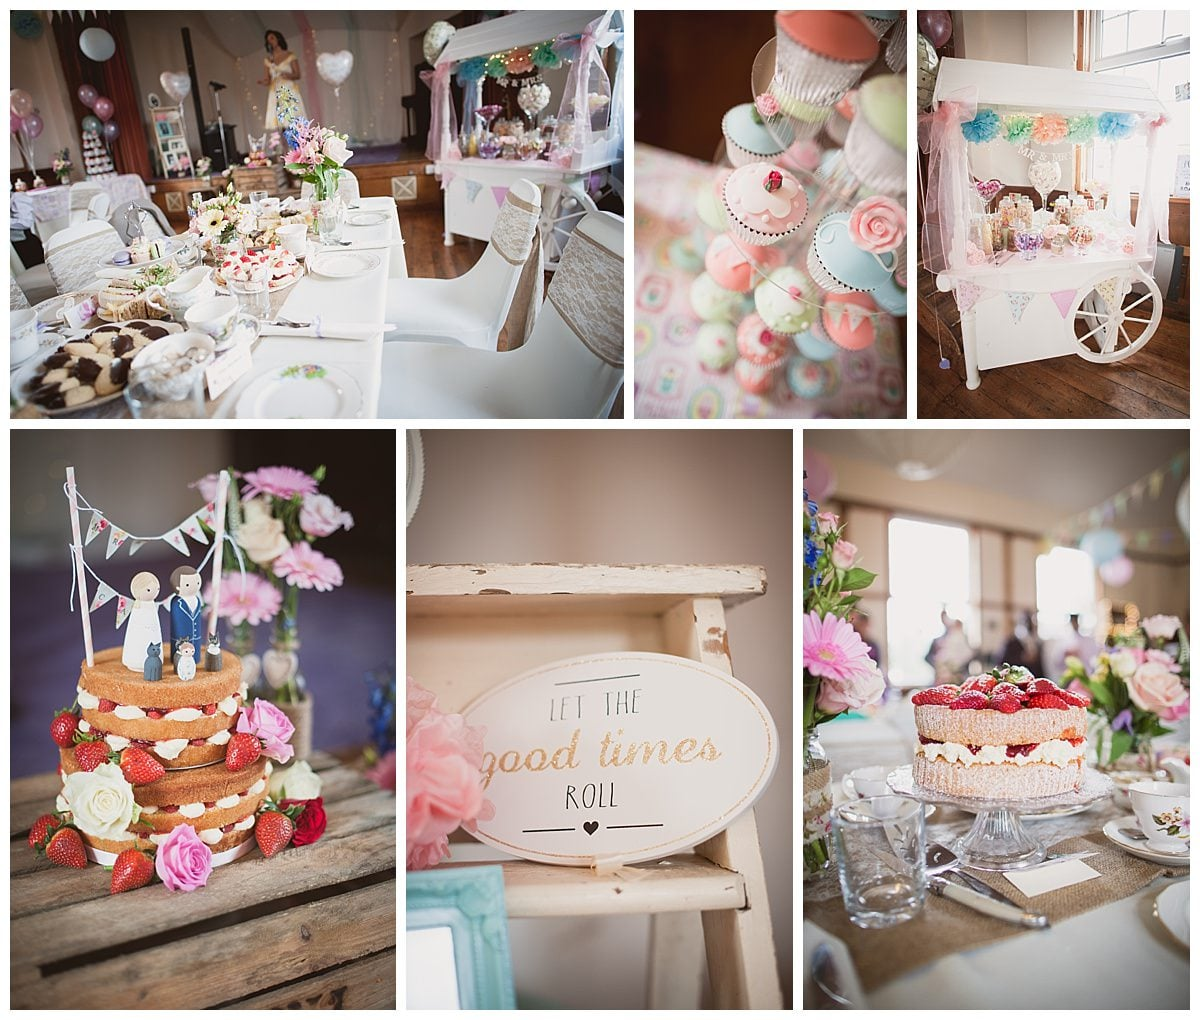 Rachel Elizabeth Photography Wedding Photographer Based In Photographs Of Vintage Afternoon Tea Reception At Emery